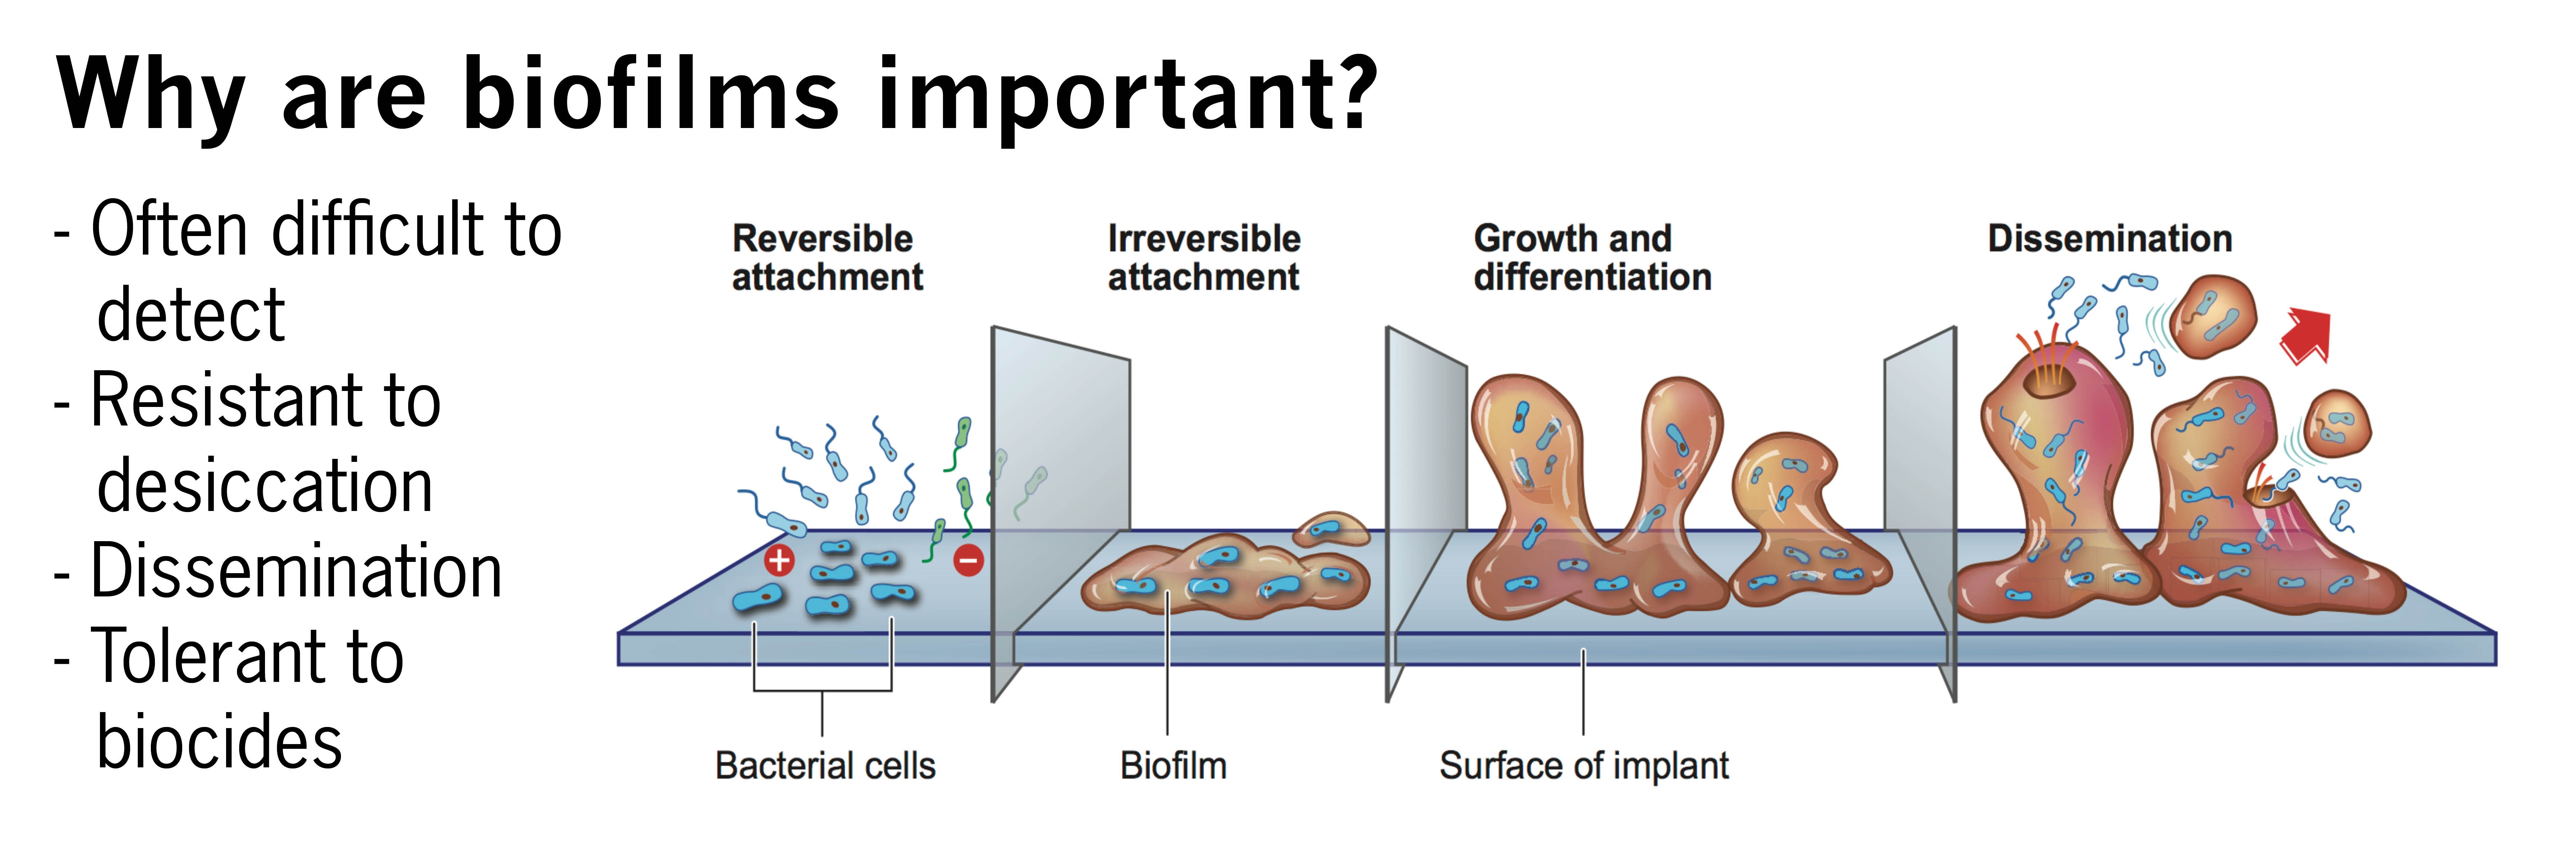 Biofilms Important low res.jpg